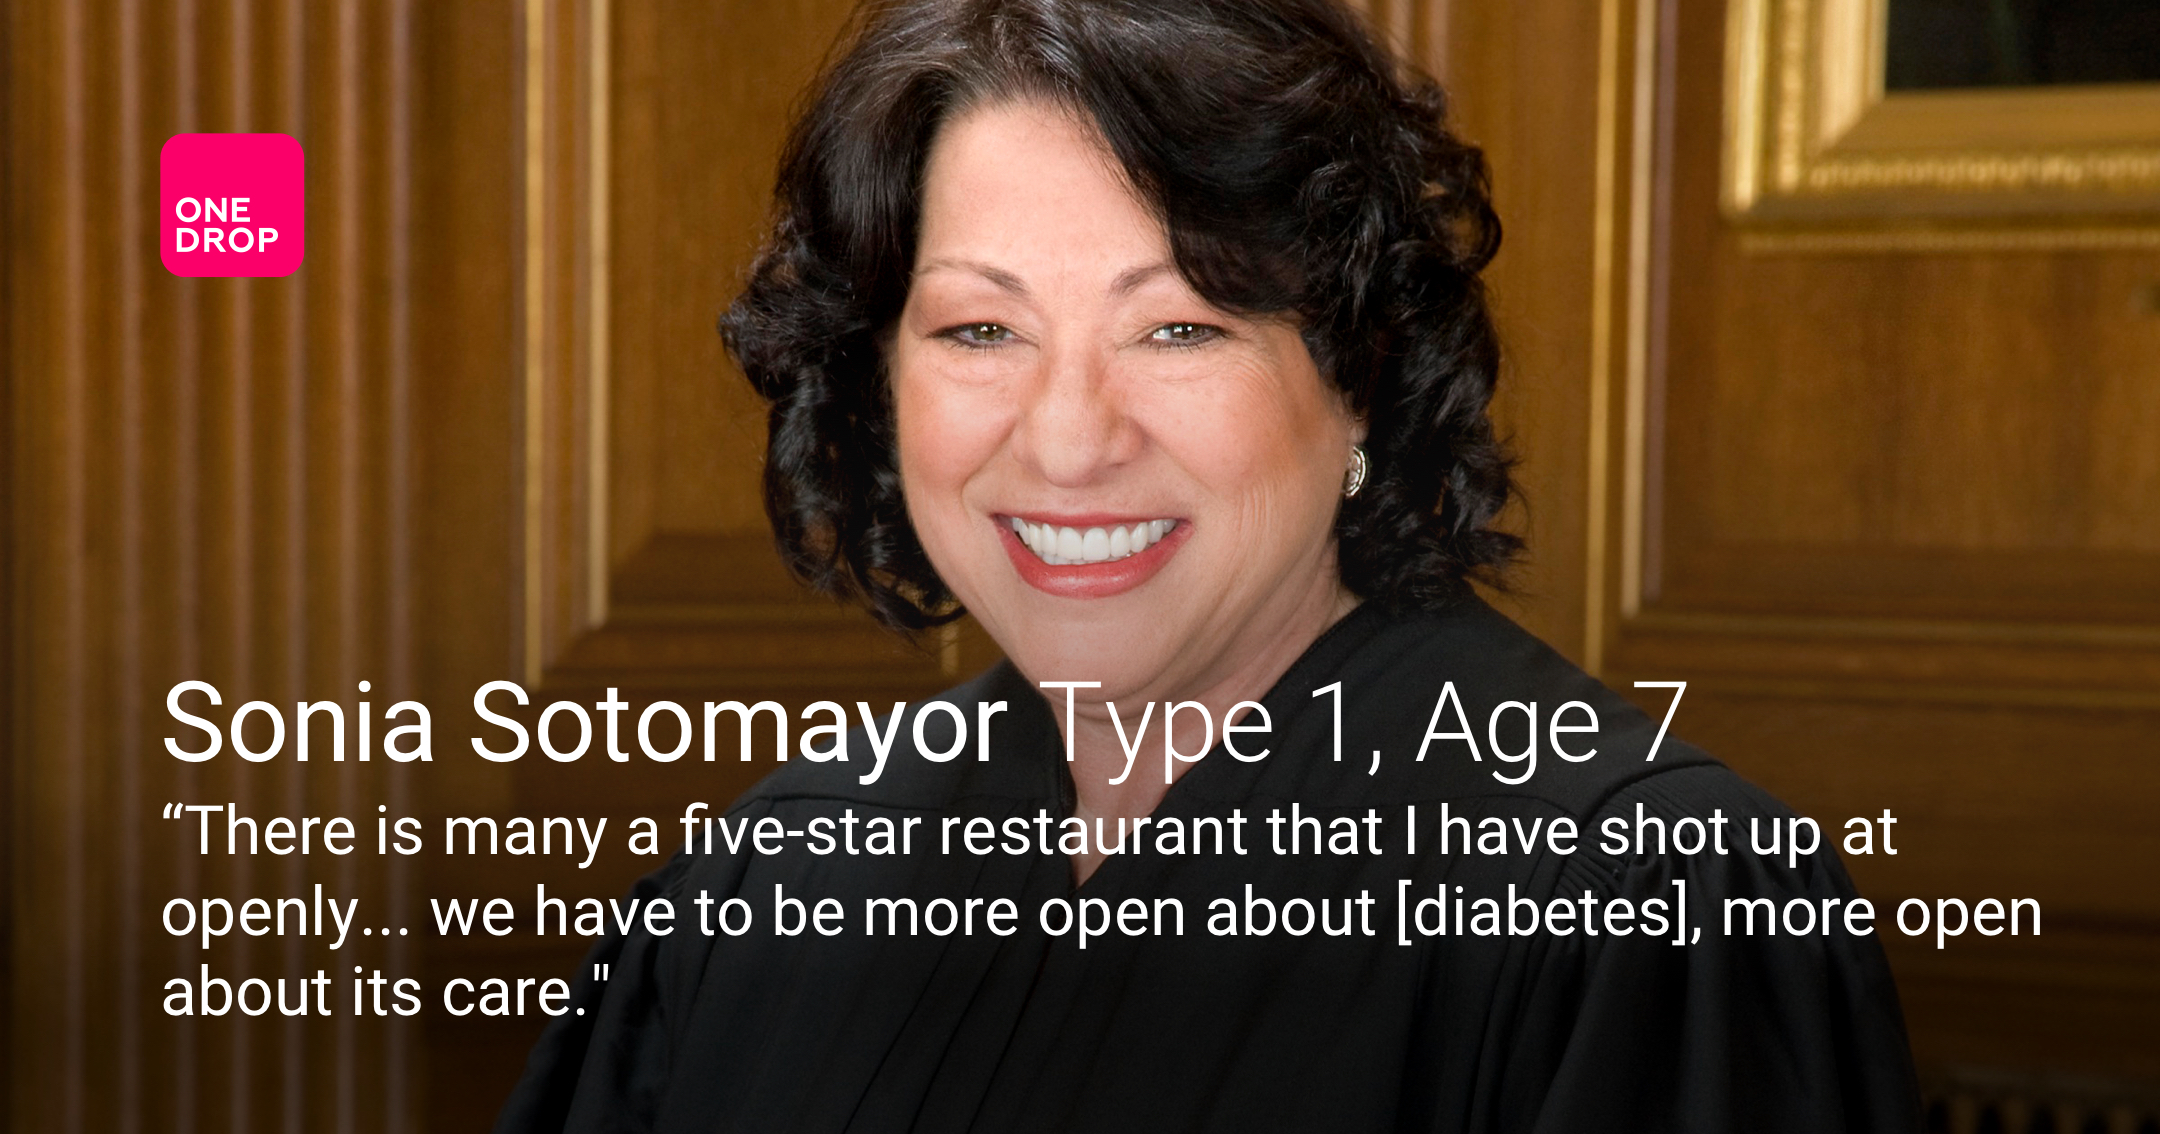 Sonia Sotomayor - Sonia Sotomayor diabetes - Sonia Sotomayor type 1 diabetes - women with diabetes - women with type 1 diabetes - international women's day